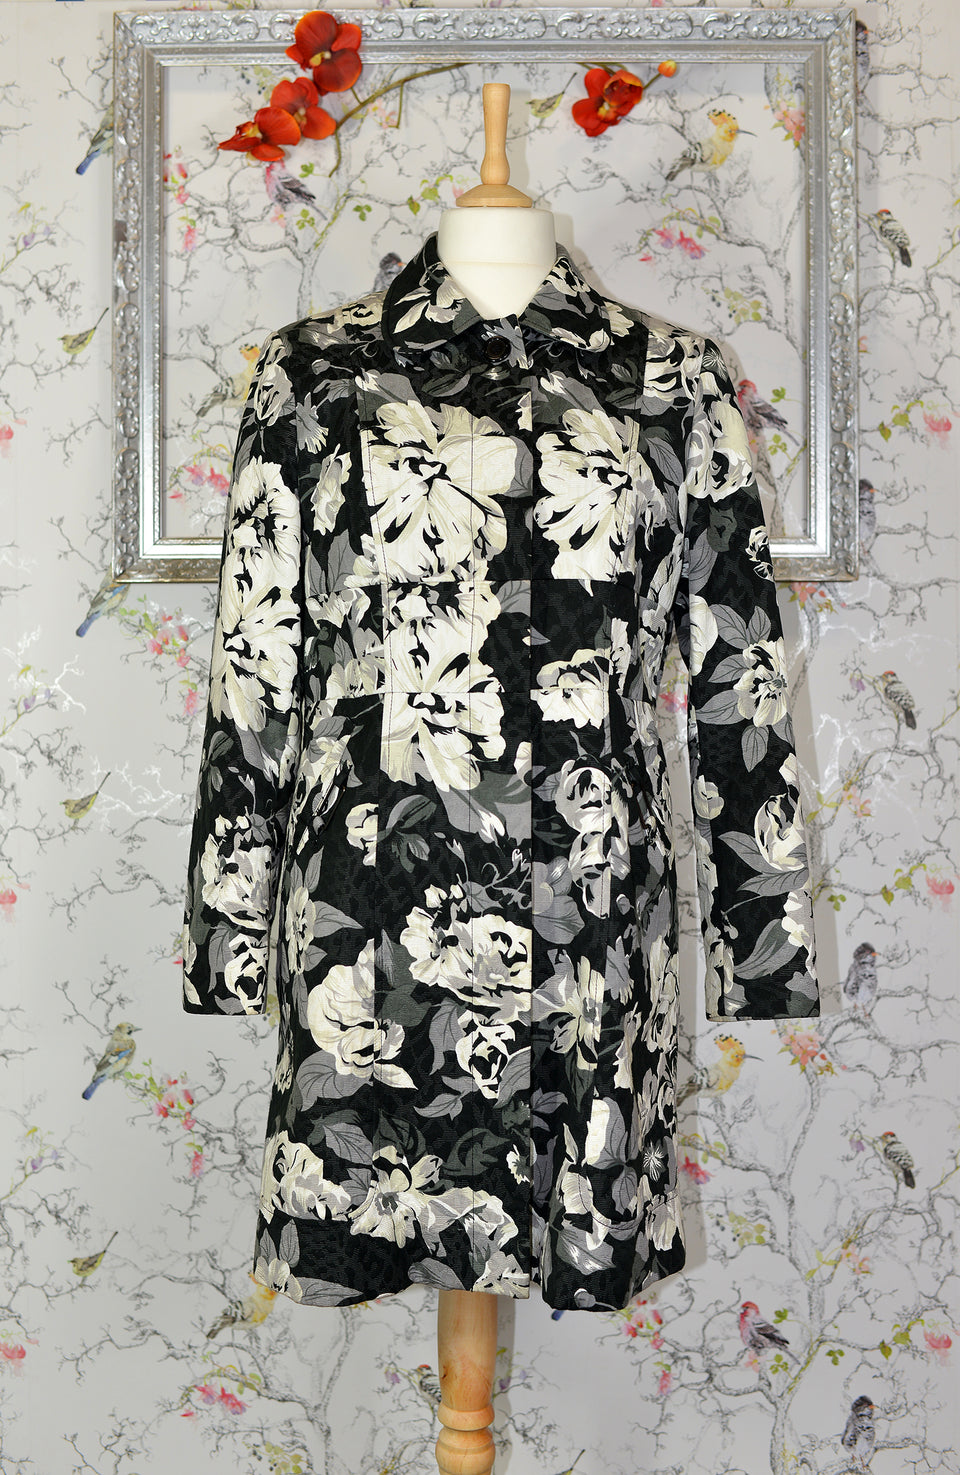 NEXT Women's Black, Grey and White Floral Coat, Size 16. Pre-loved.